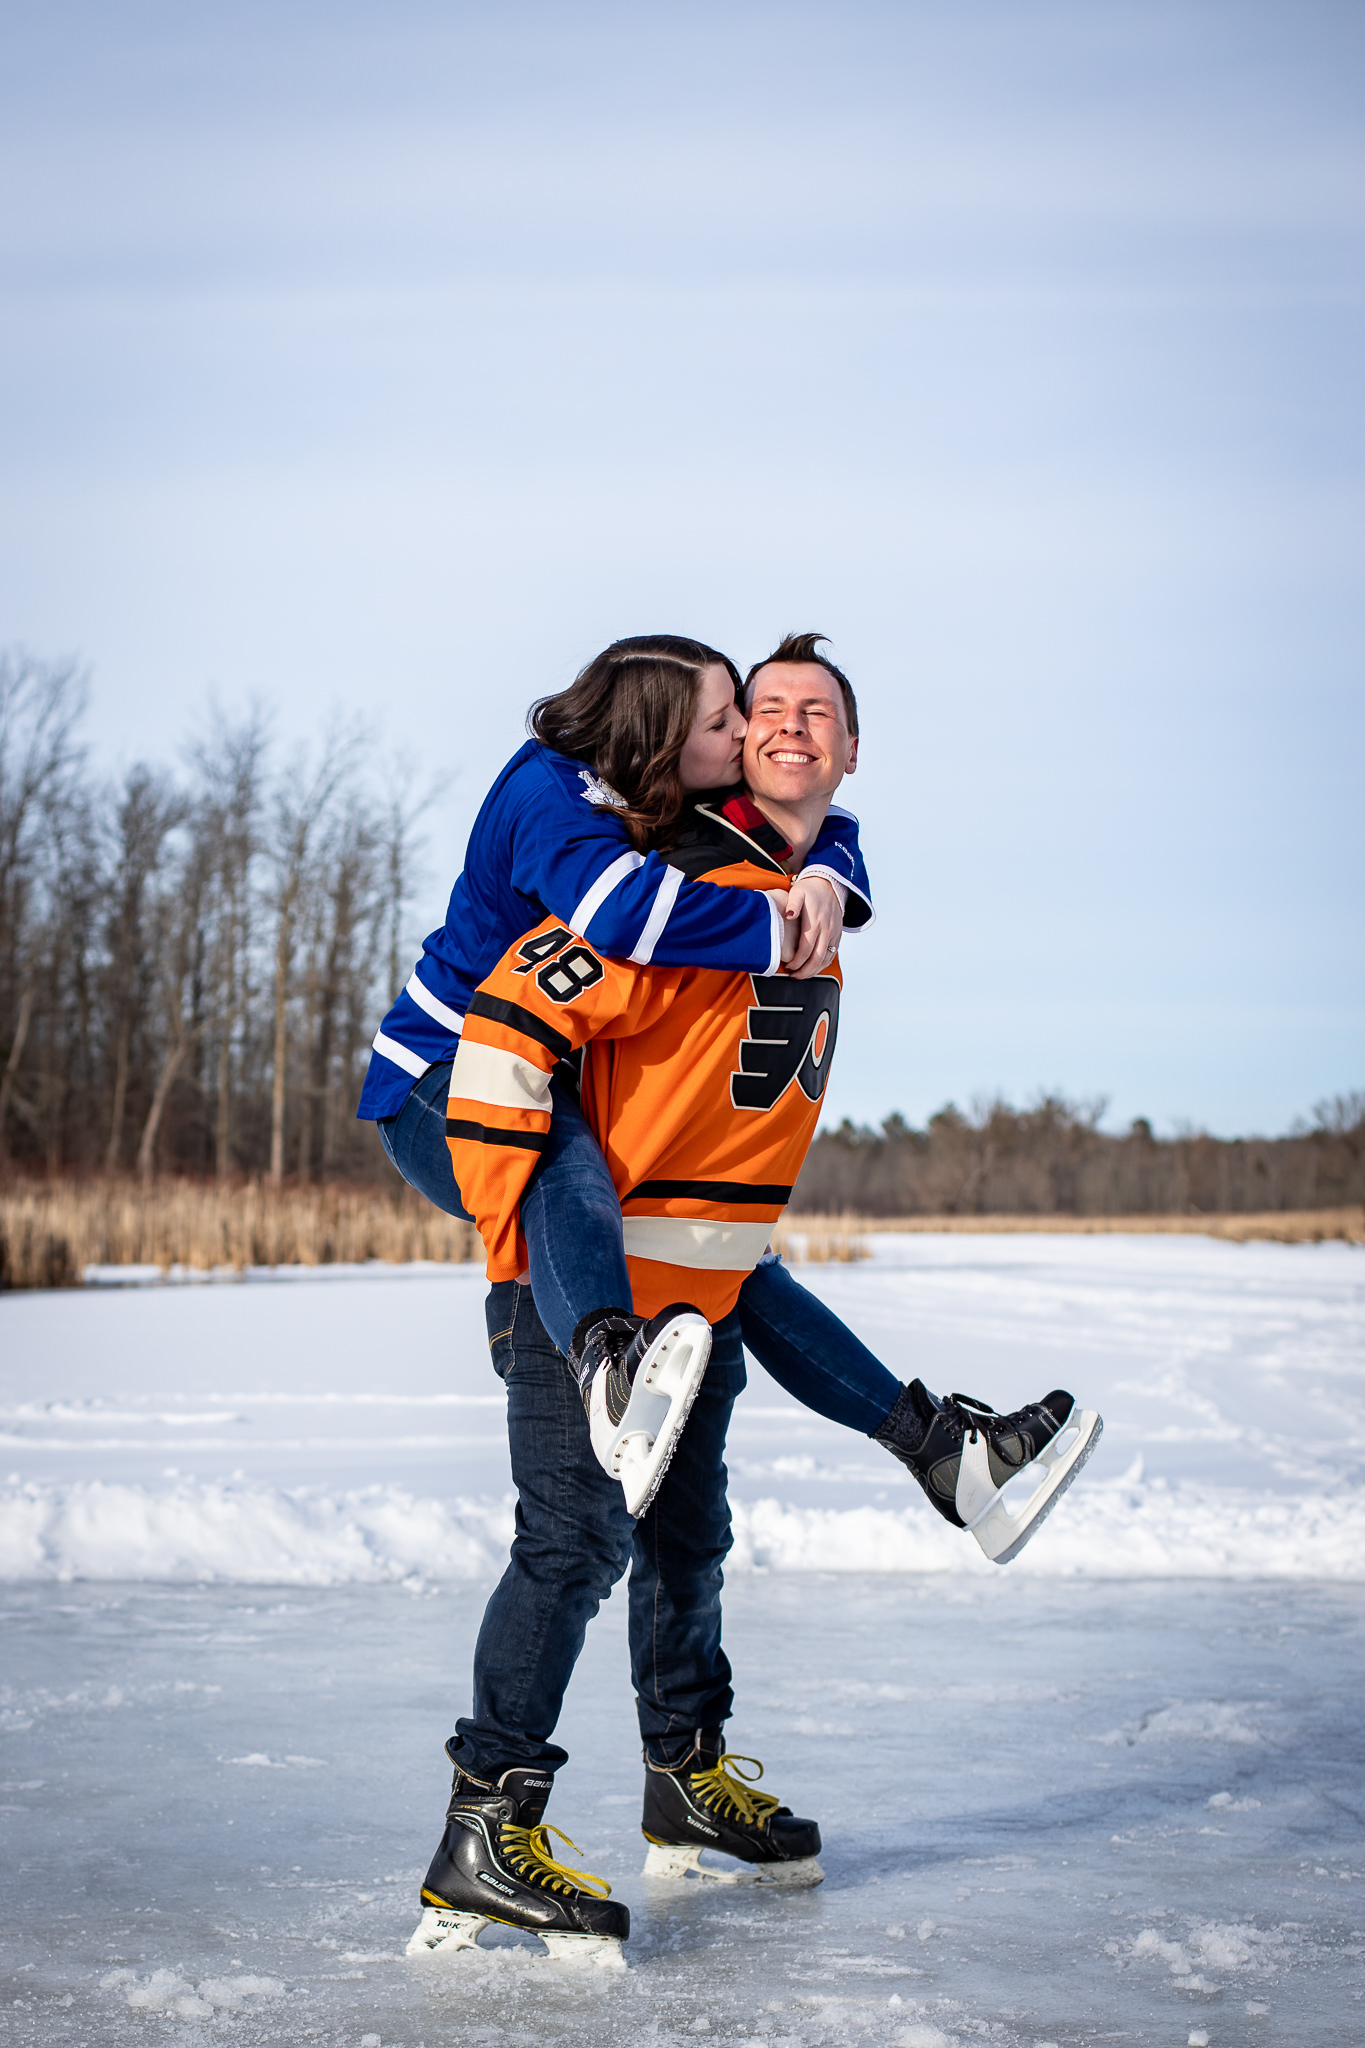 ice-skating-hockey-engagement-photos-11.jpg